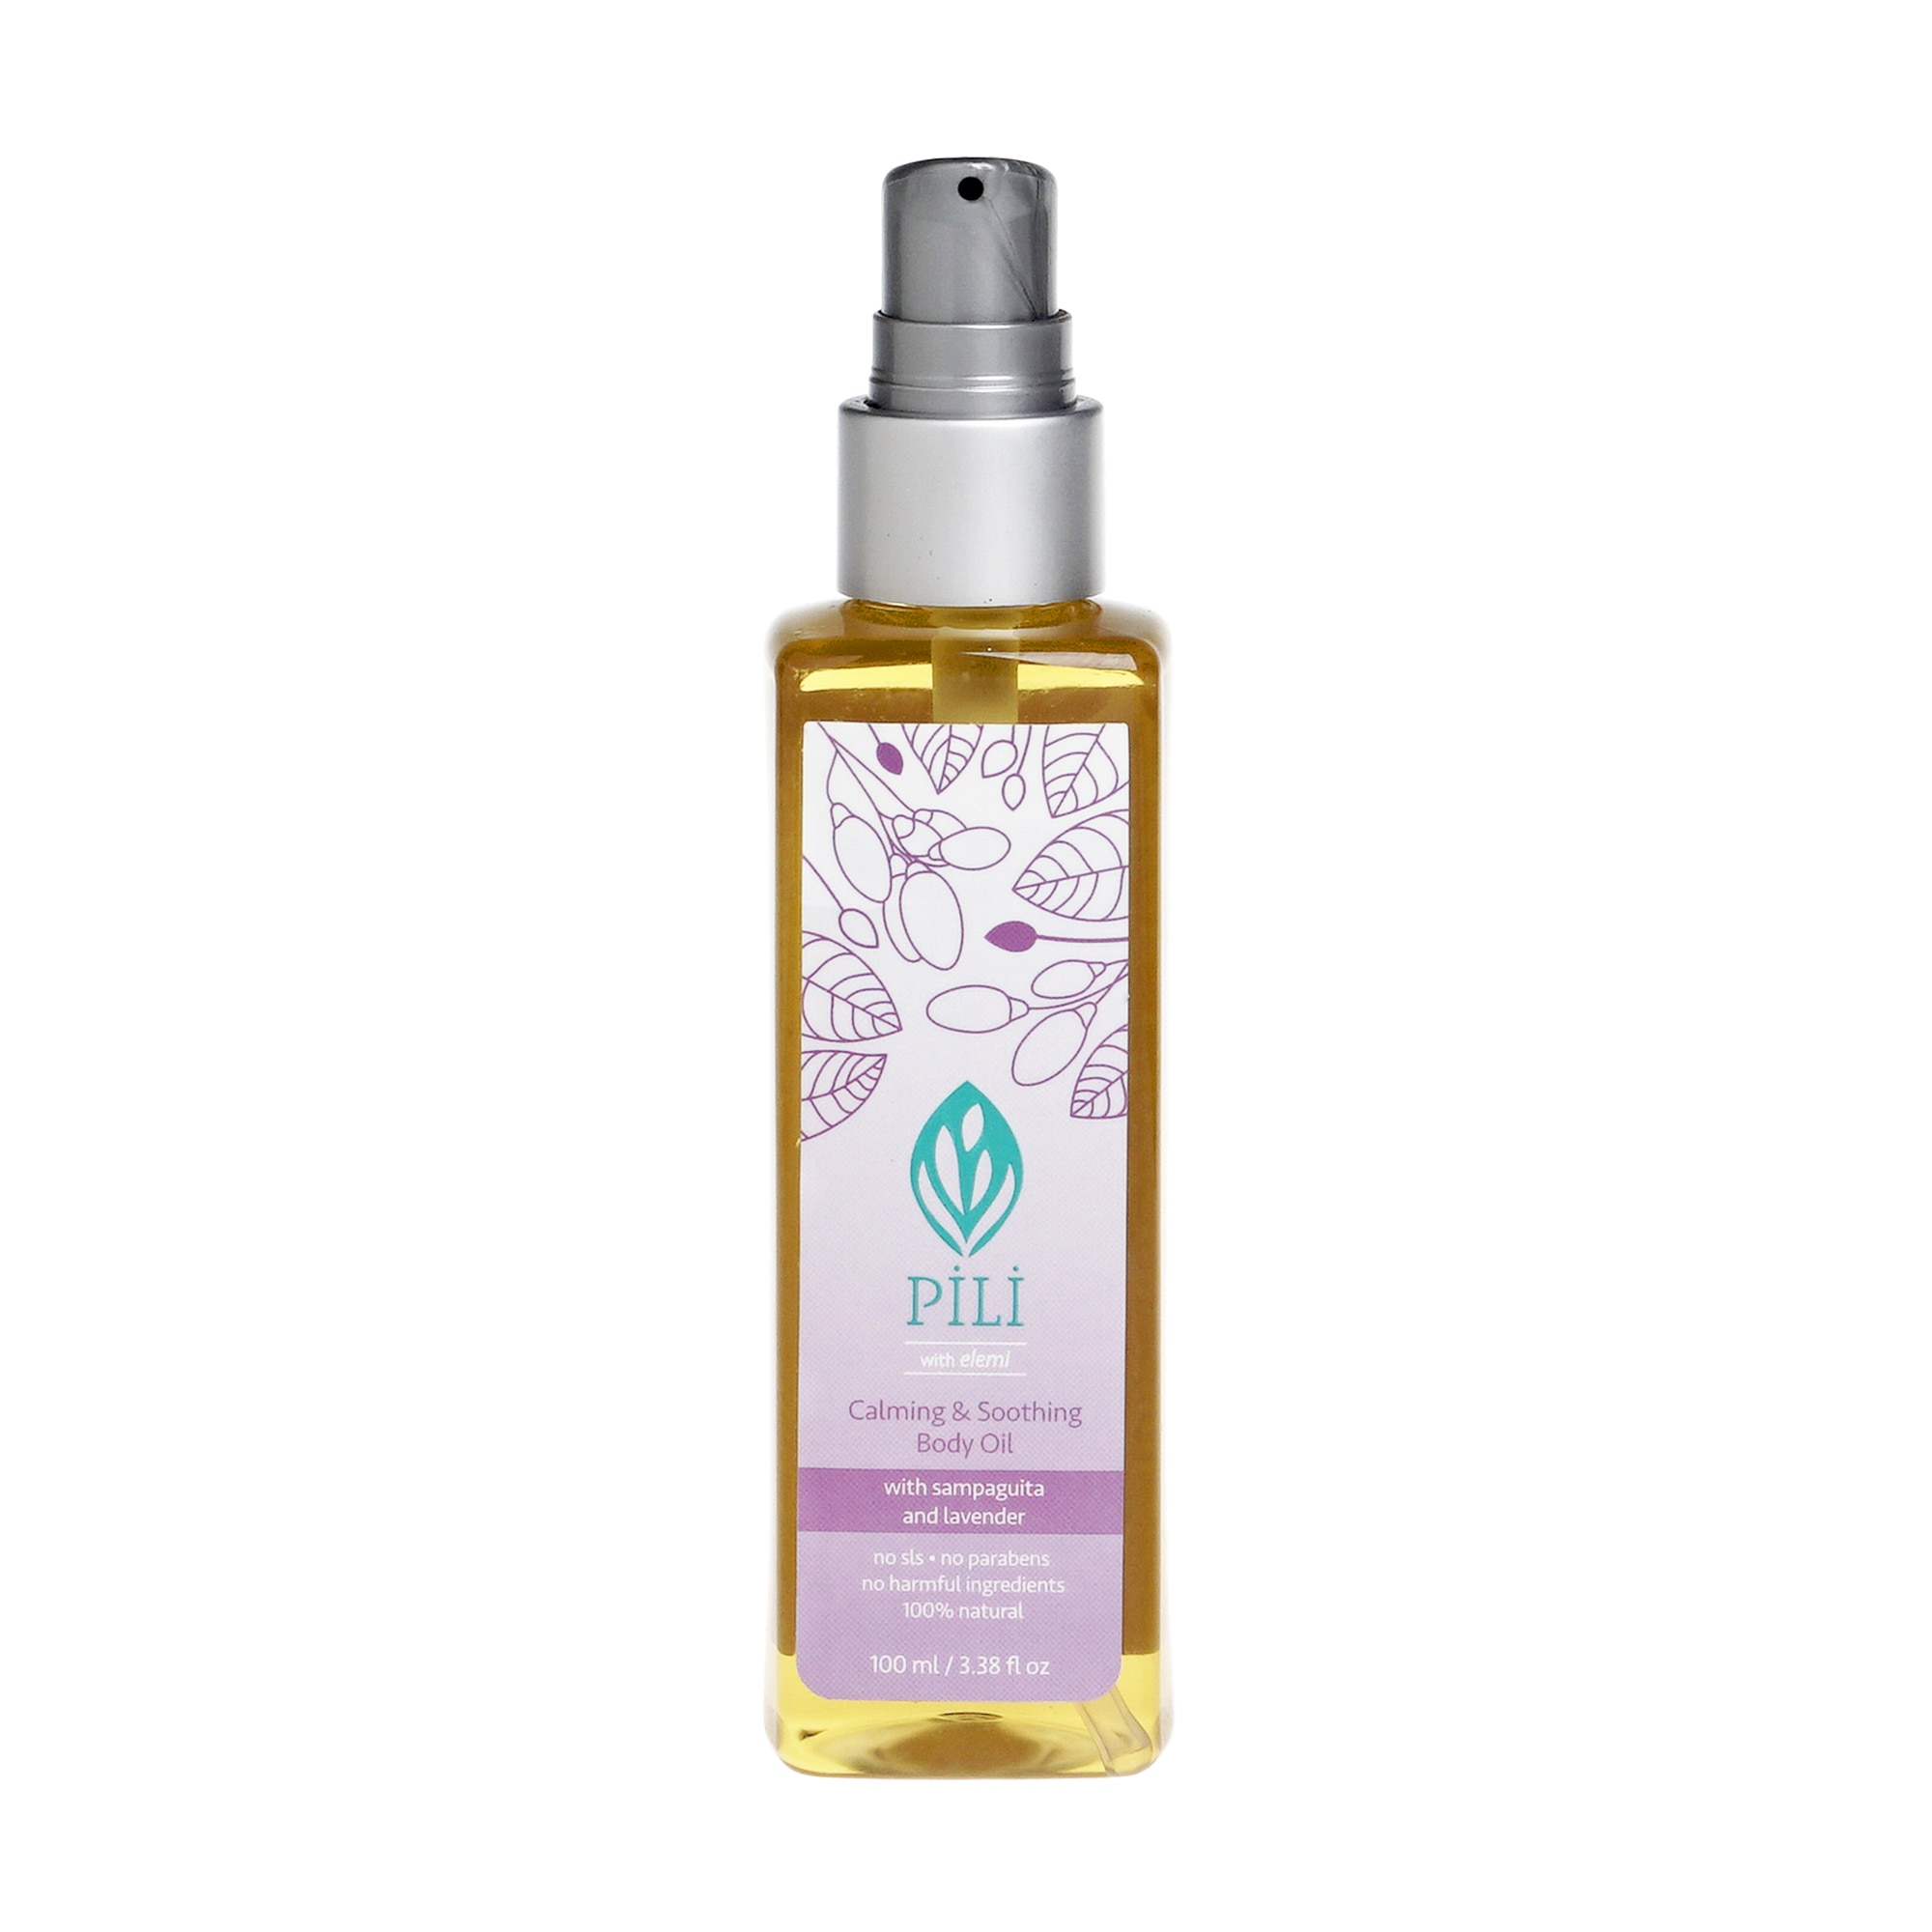 PILICalming & Soothing Body Oil 100ml,Body OilBABYDOVE5XSR5